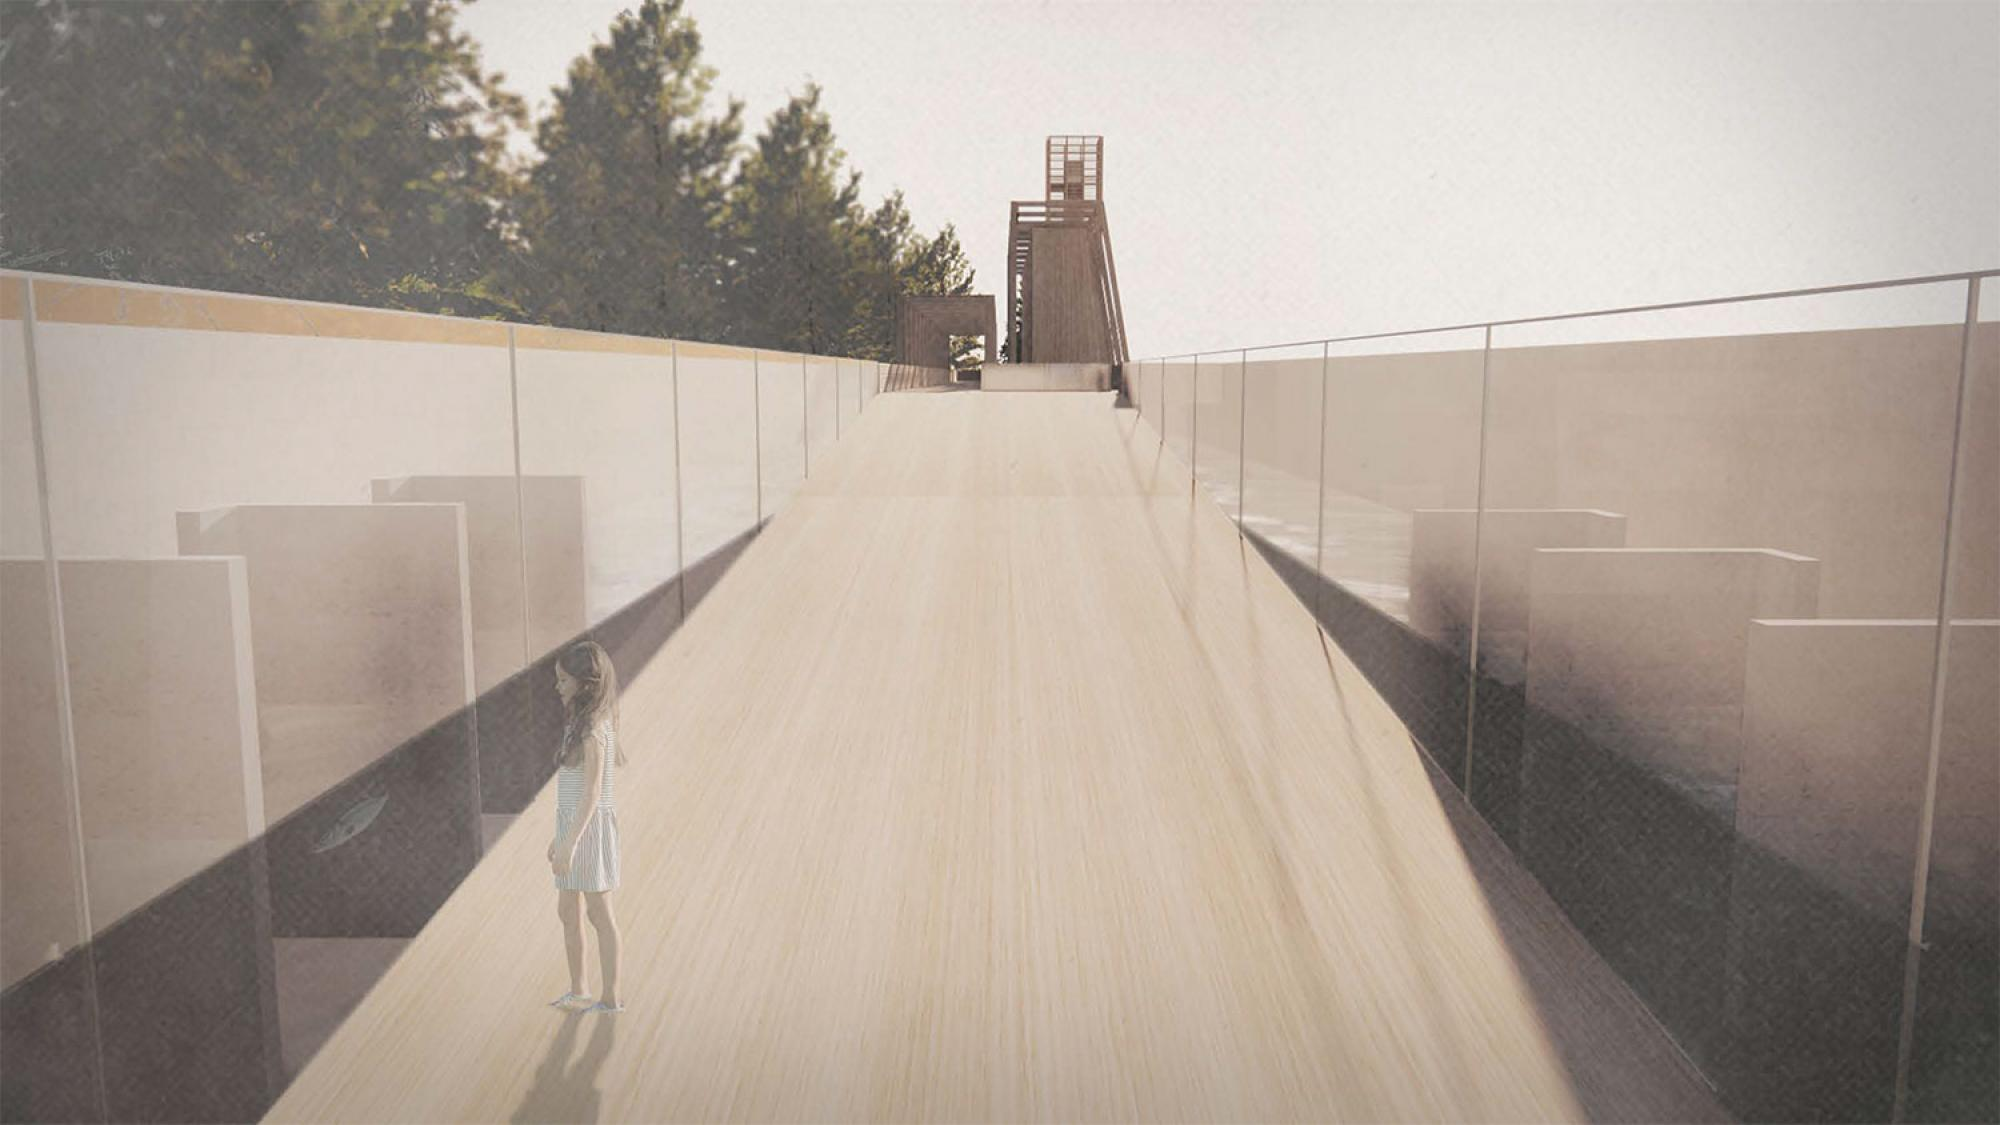 Duwamish People's Memorial and Gallery by Jenny Nguyen